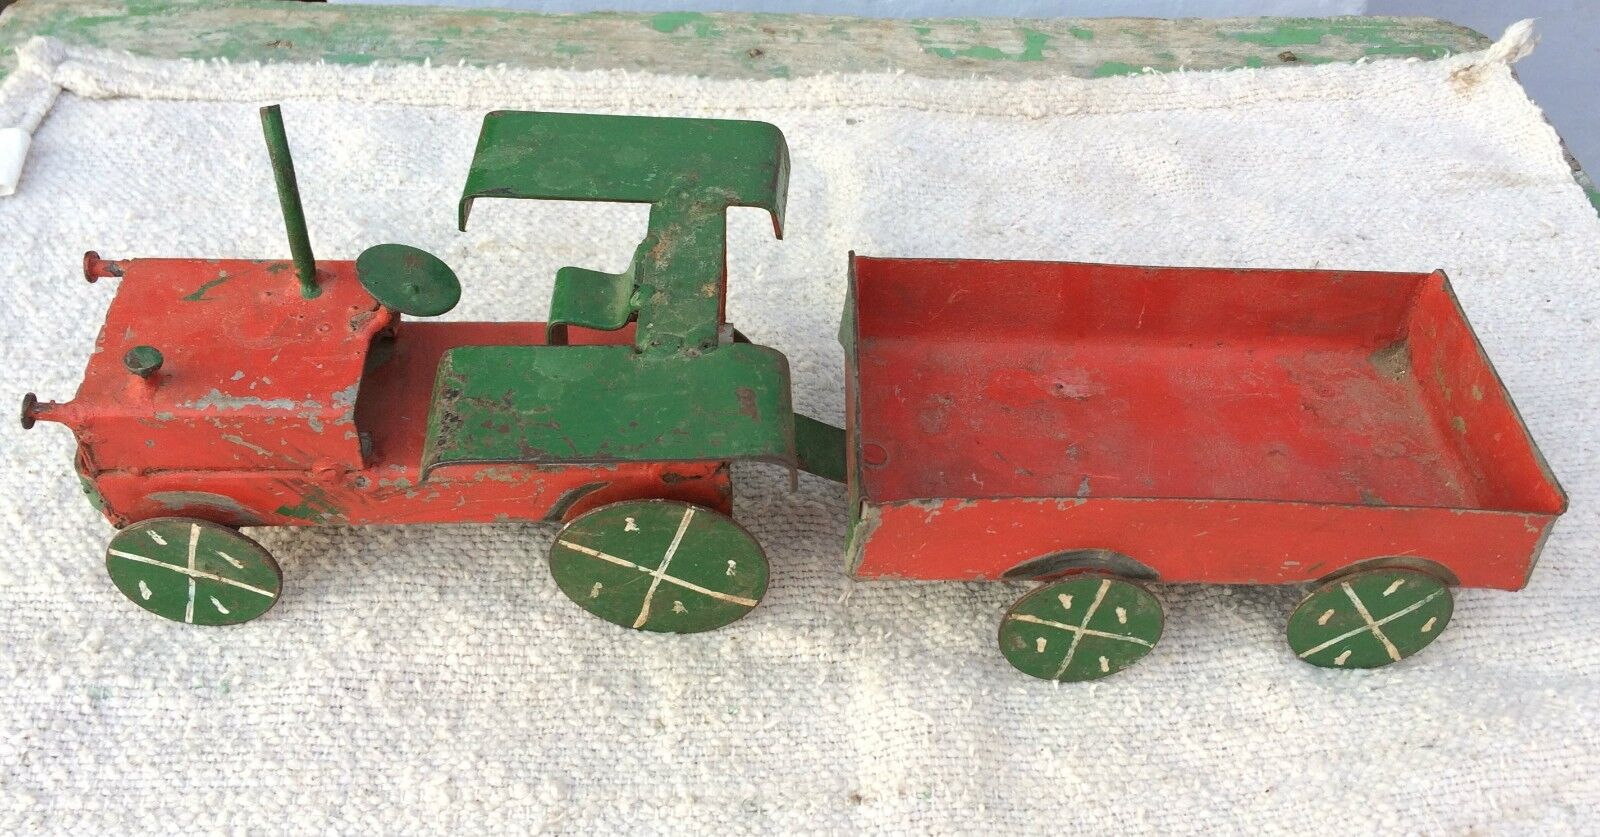 1970's VINTAGE UNIQUE HAND PAINTED METAL TRACTOR WITH TROLLEY TOY / MODEL